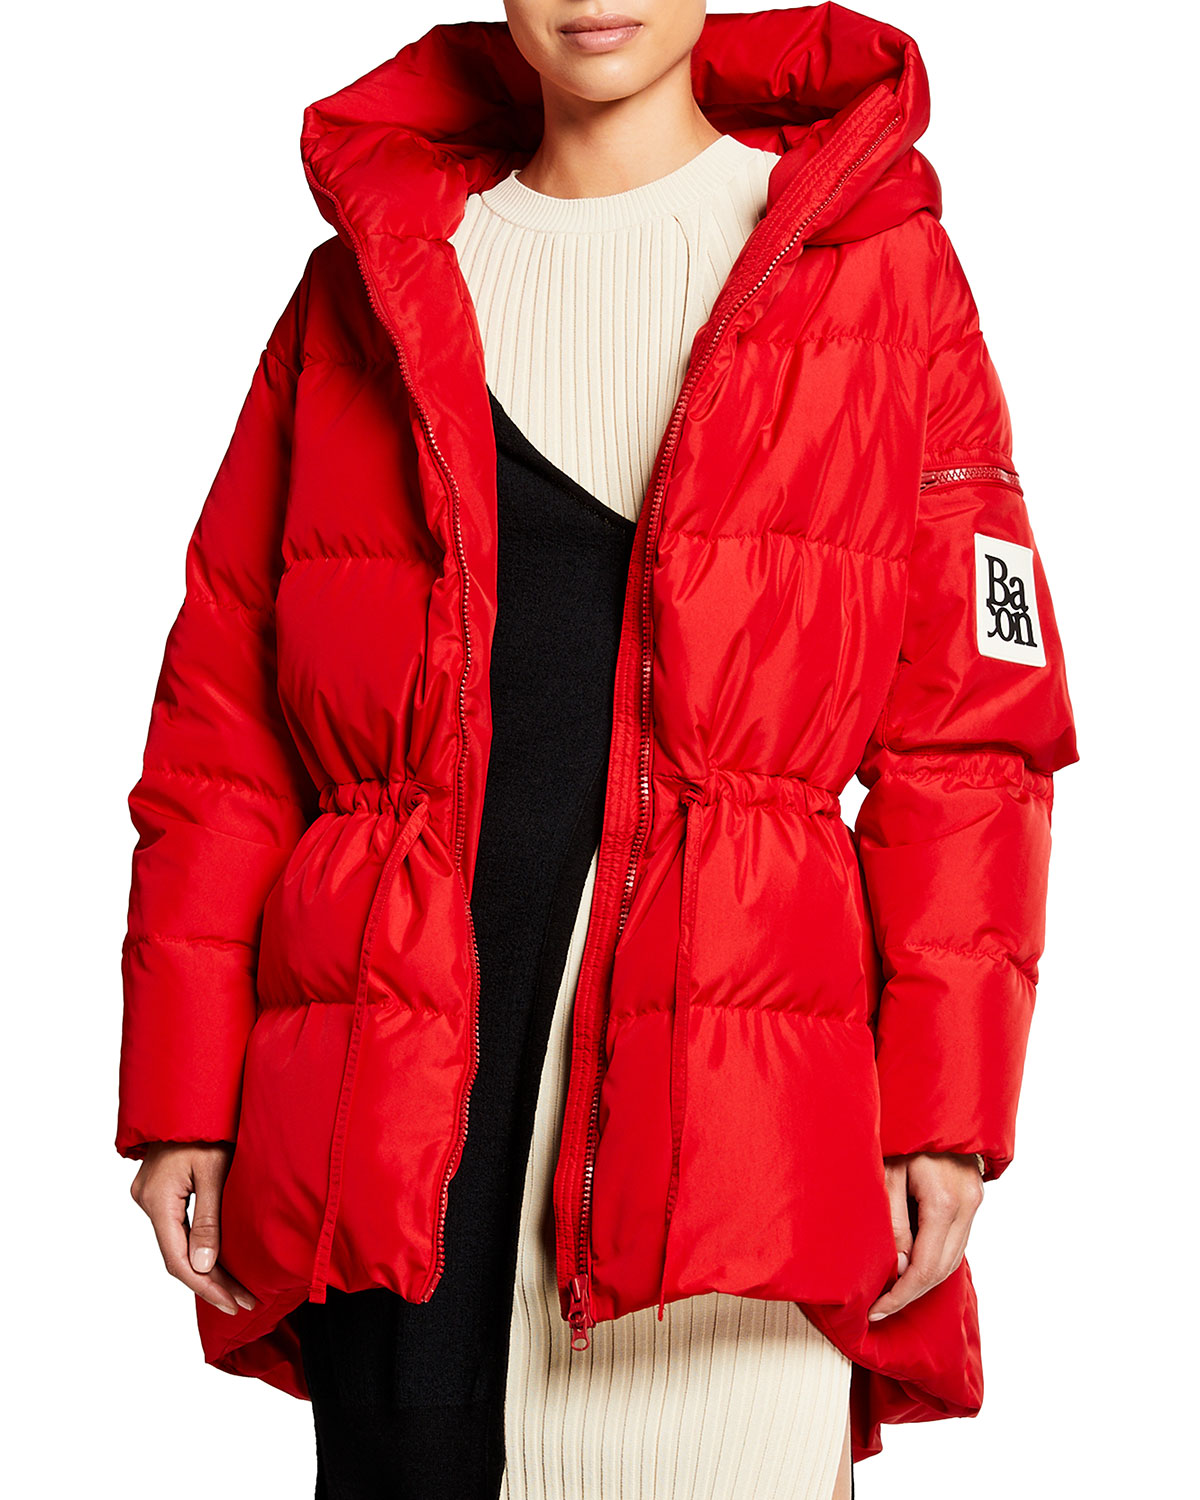 Bacon Cloud Mid-Length Red Puffer Coat